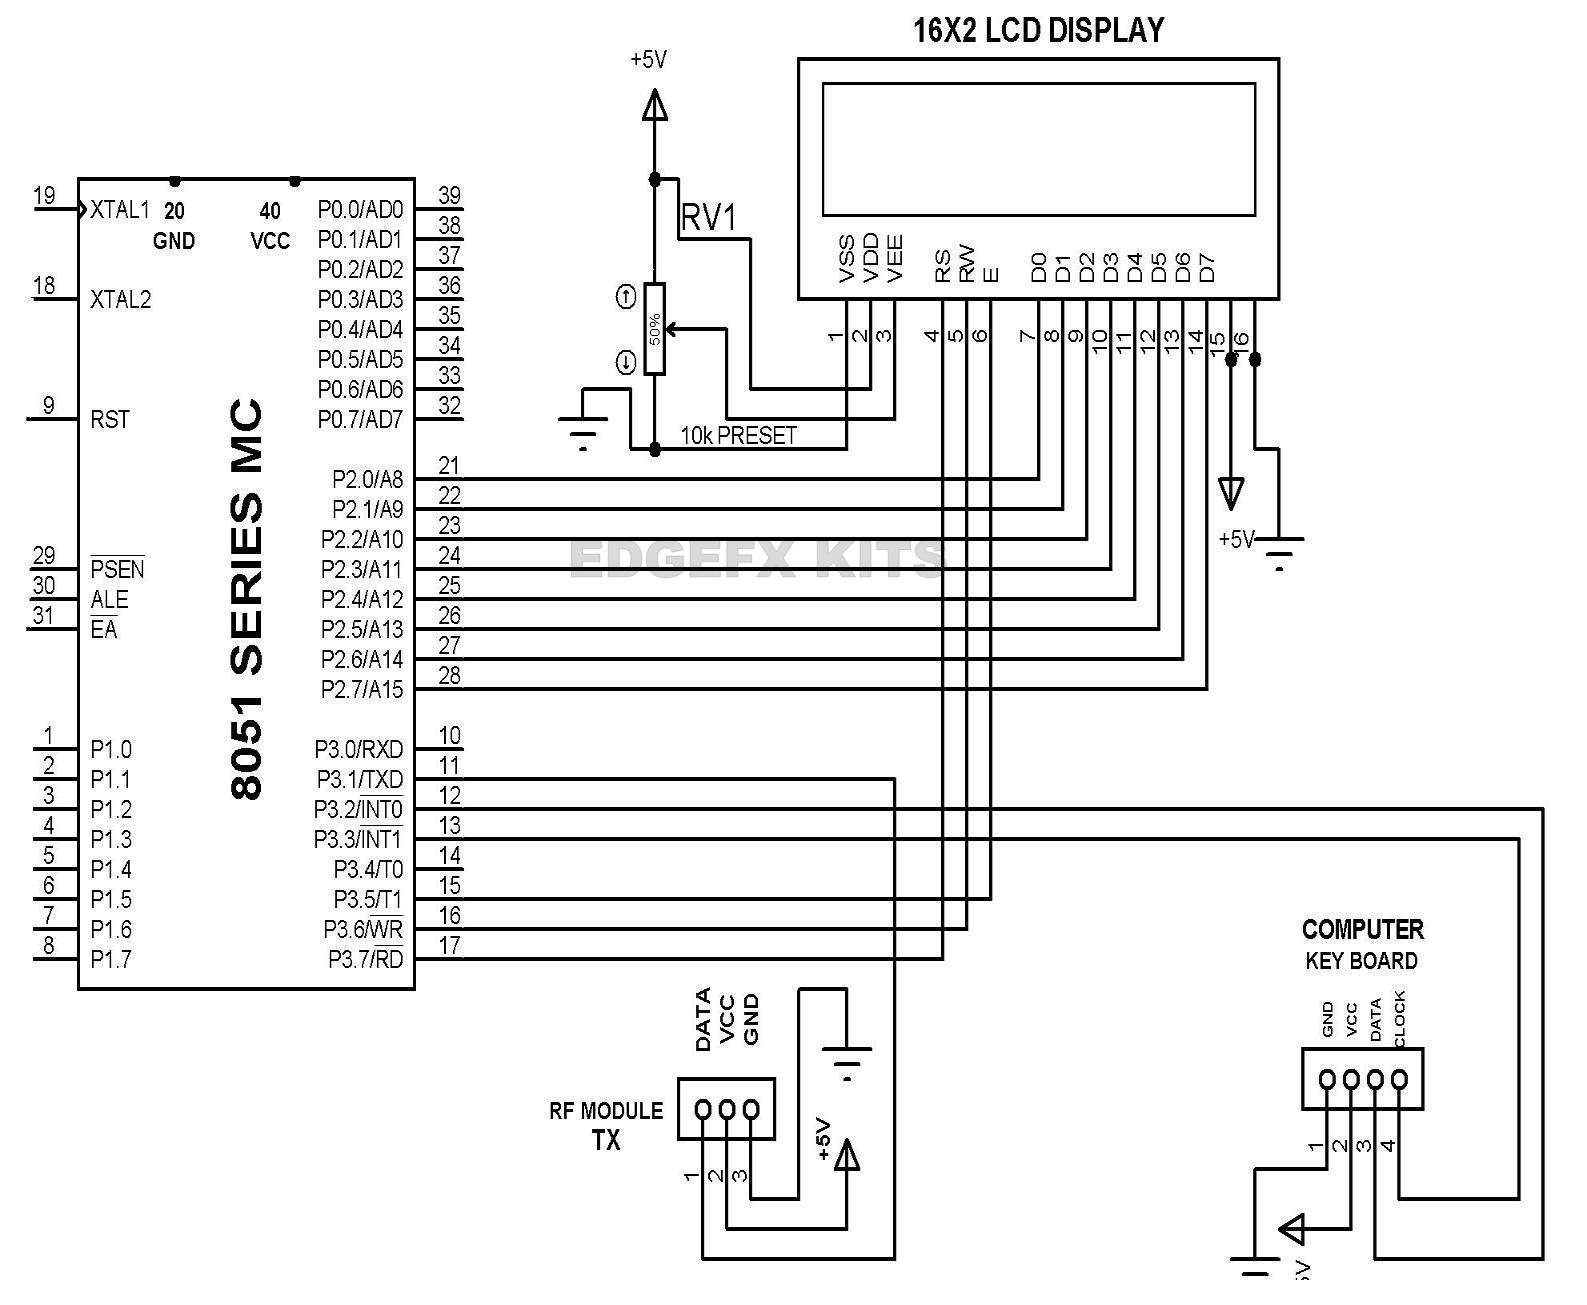 hight resolution of wireless rf module rf transmitter and receiver latest applications wiring diagram receiver and emitter in a plc